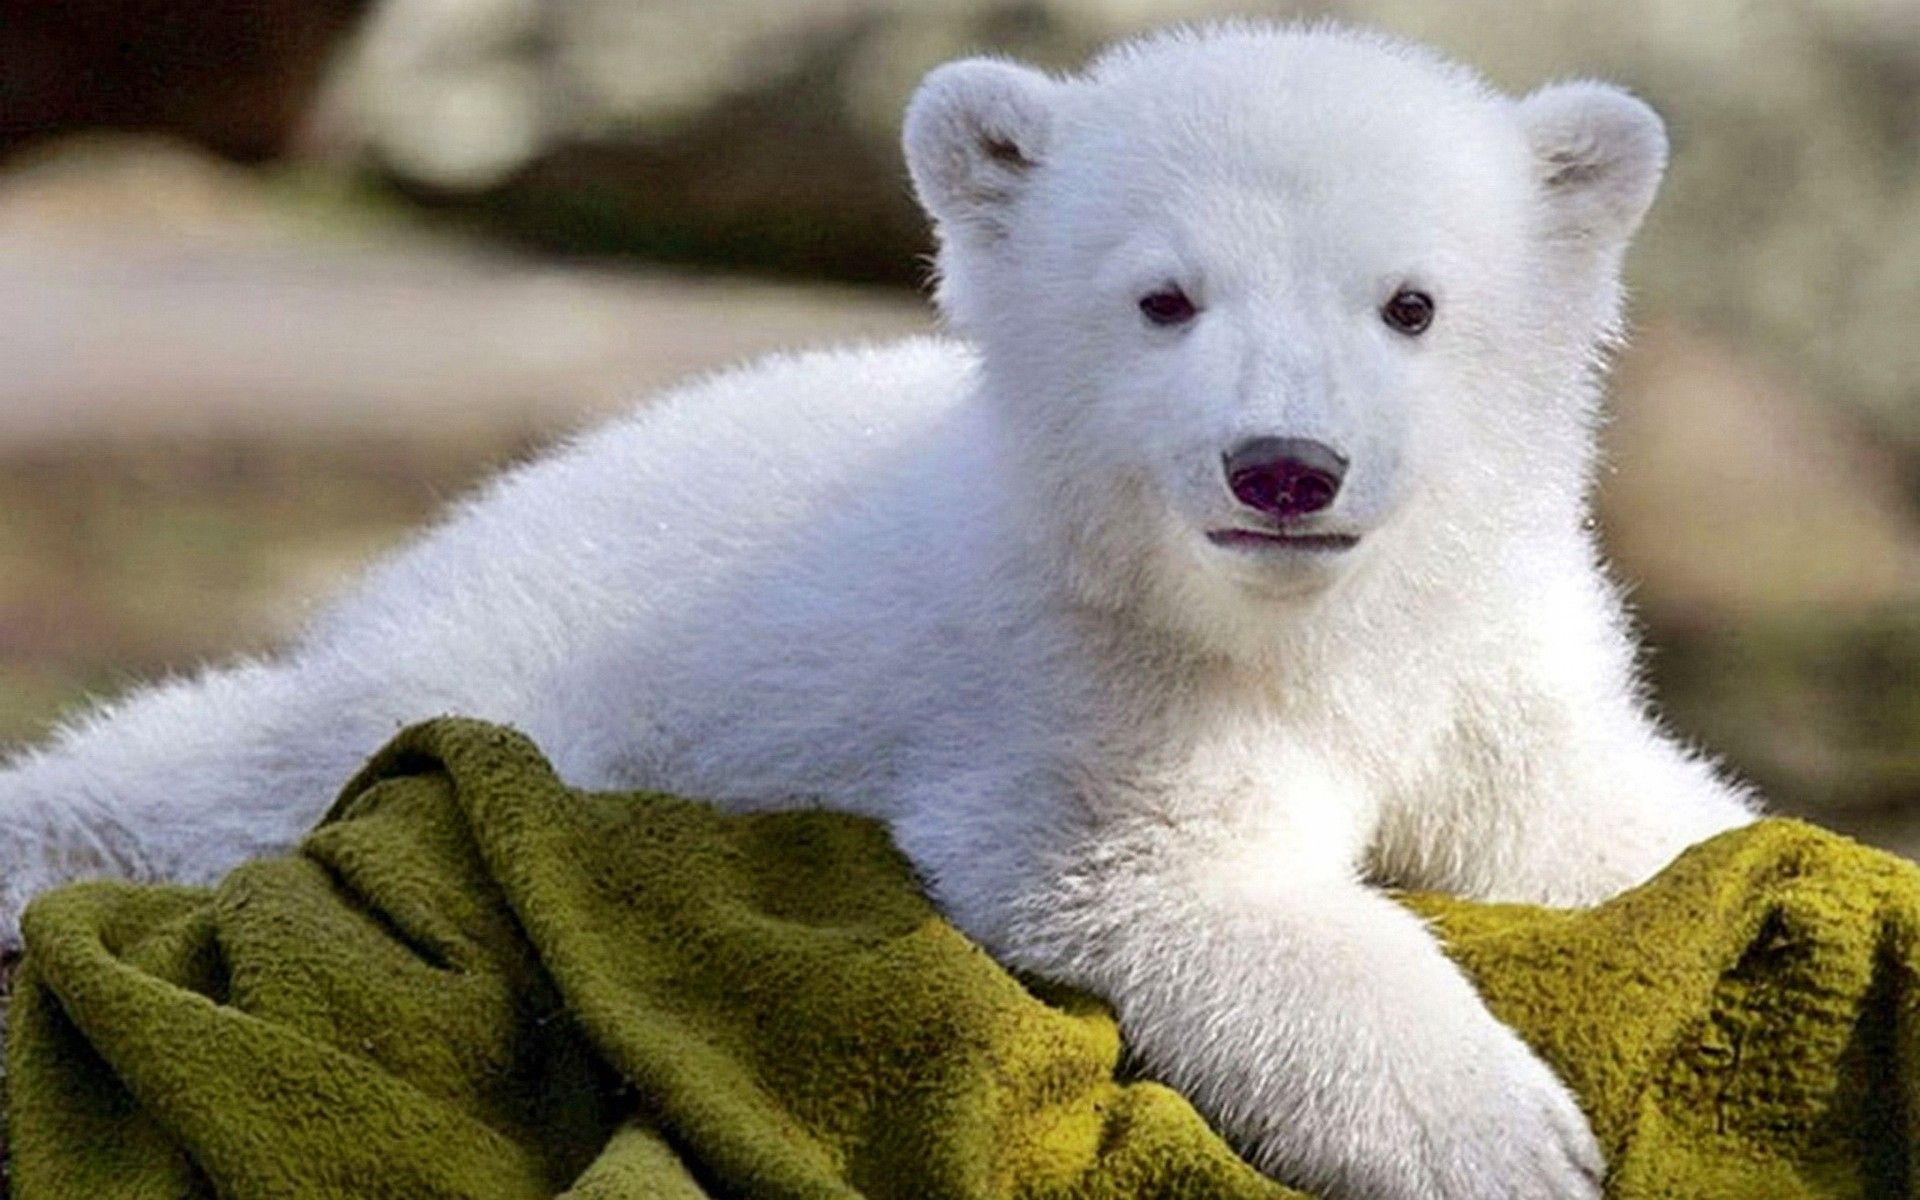 baby-animals-hd-wallpapers-download | baby animal cuteness